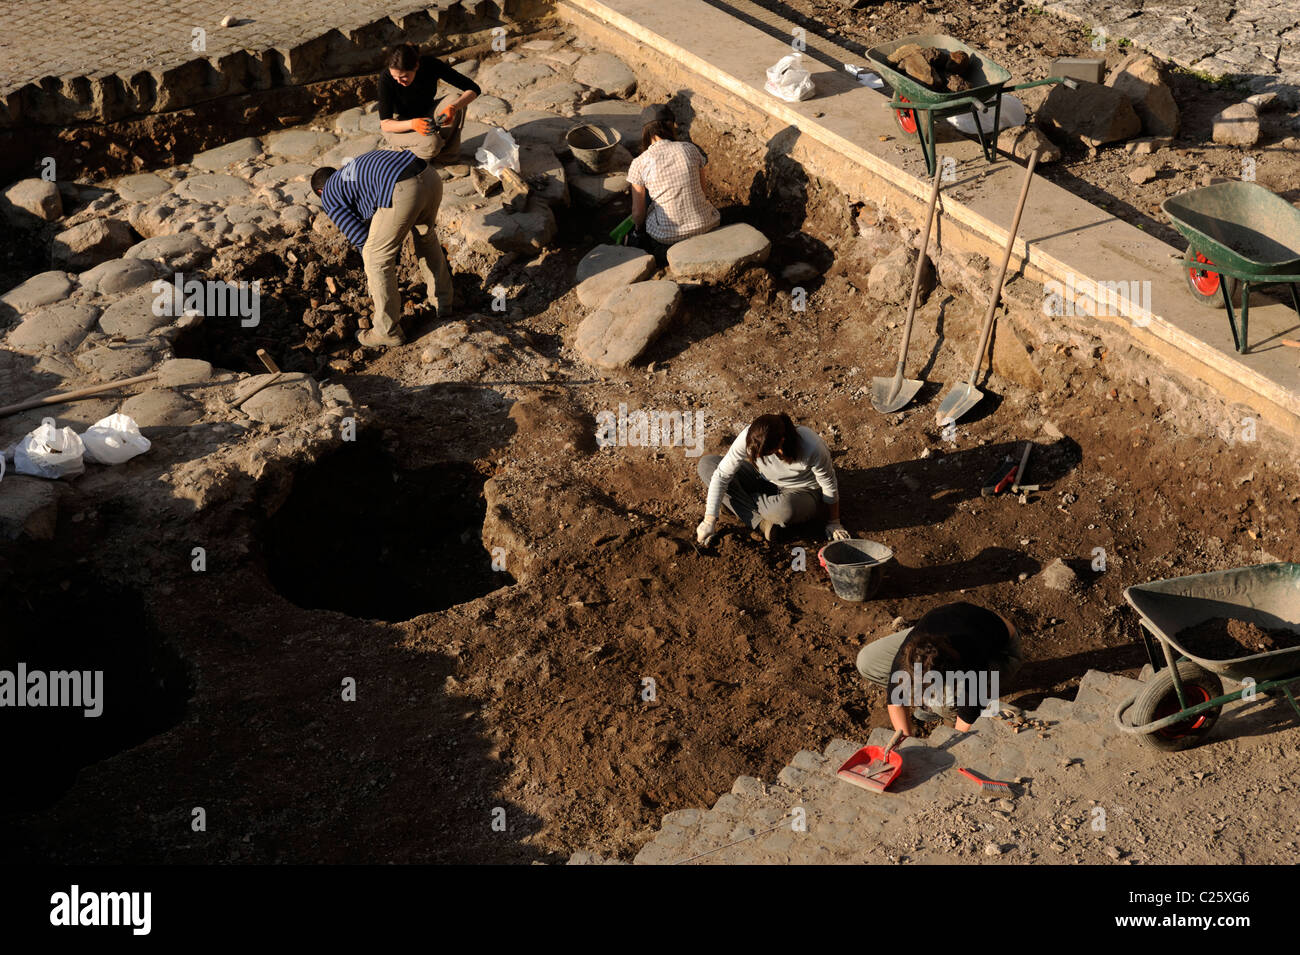 italy, rome, archaeological dig in the forum boarium, archaeologists working - Stock Image